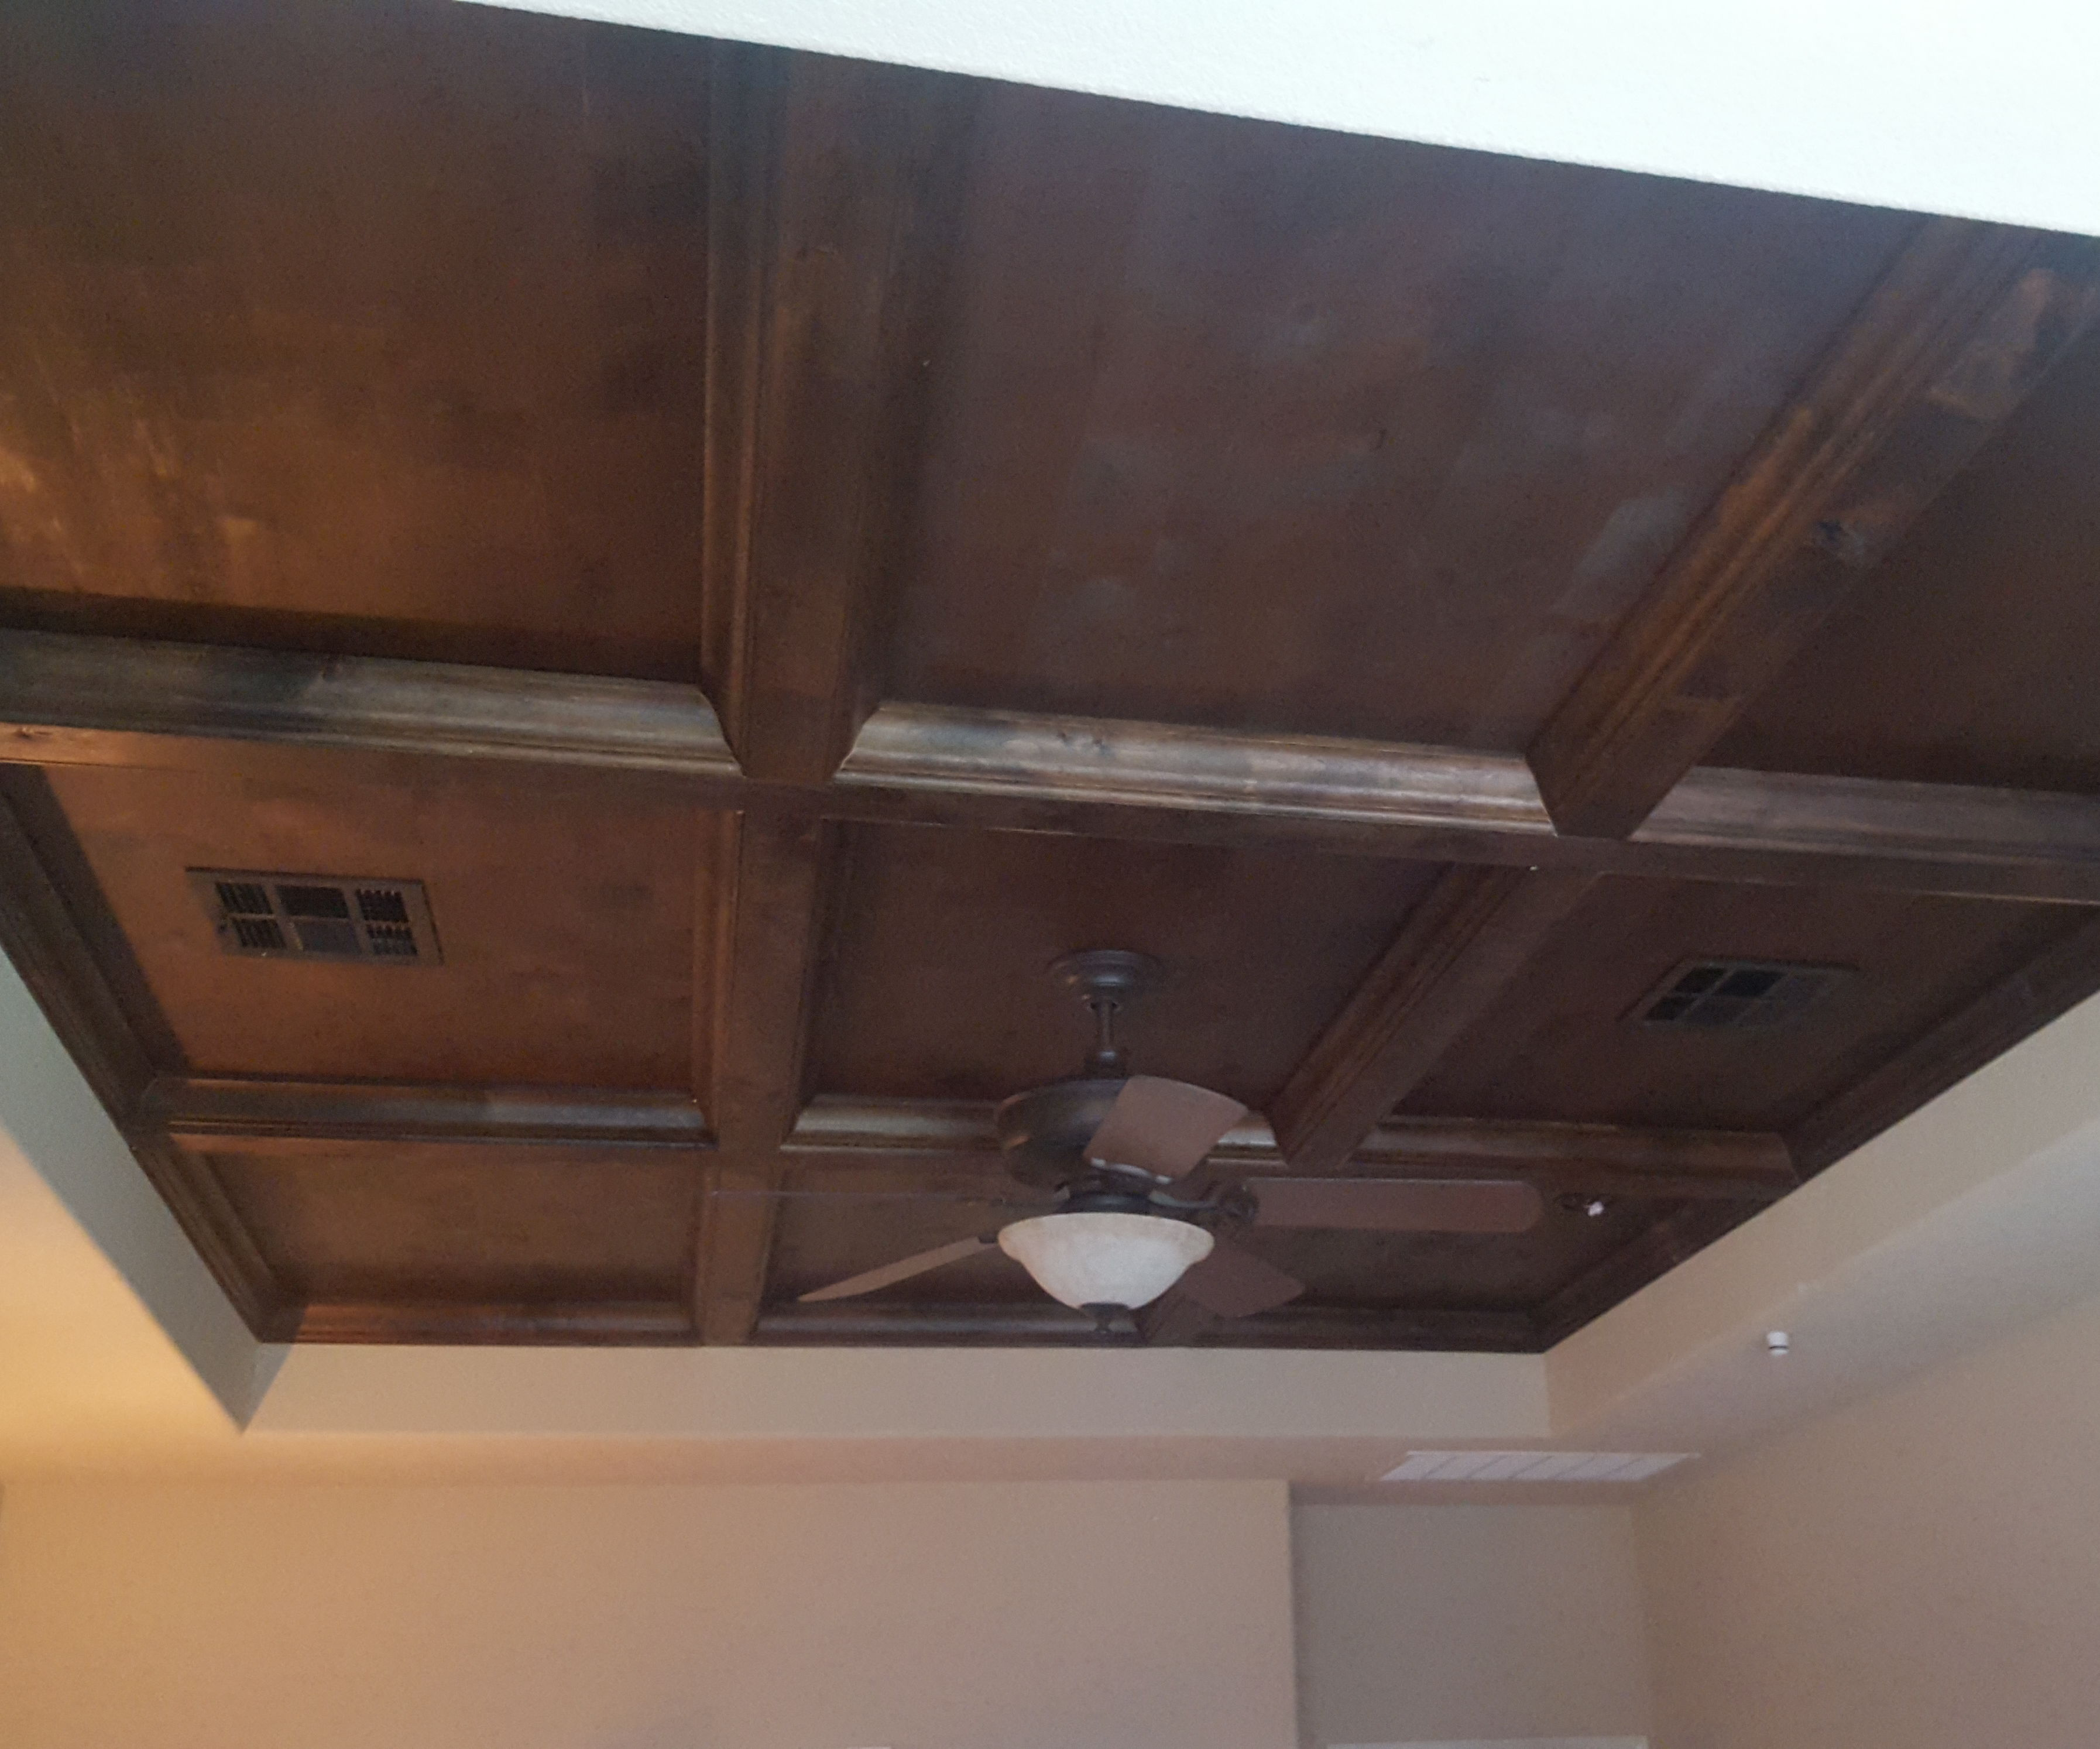 Image of: How To Diy A Professional Looking Coffered Ceiling For 800 In Materials 5 Steps With Pictures Instructables